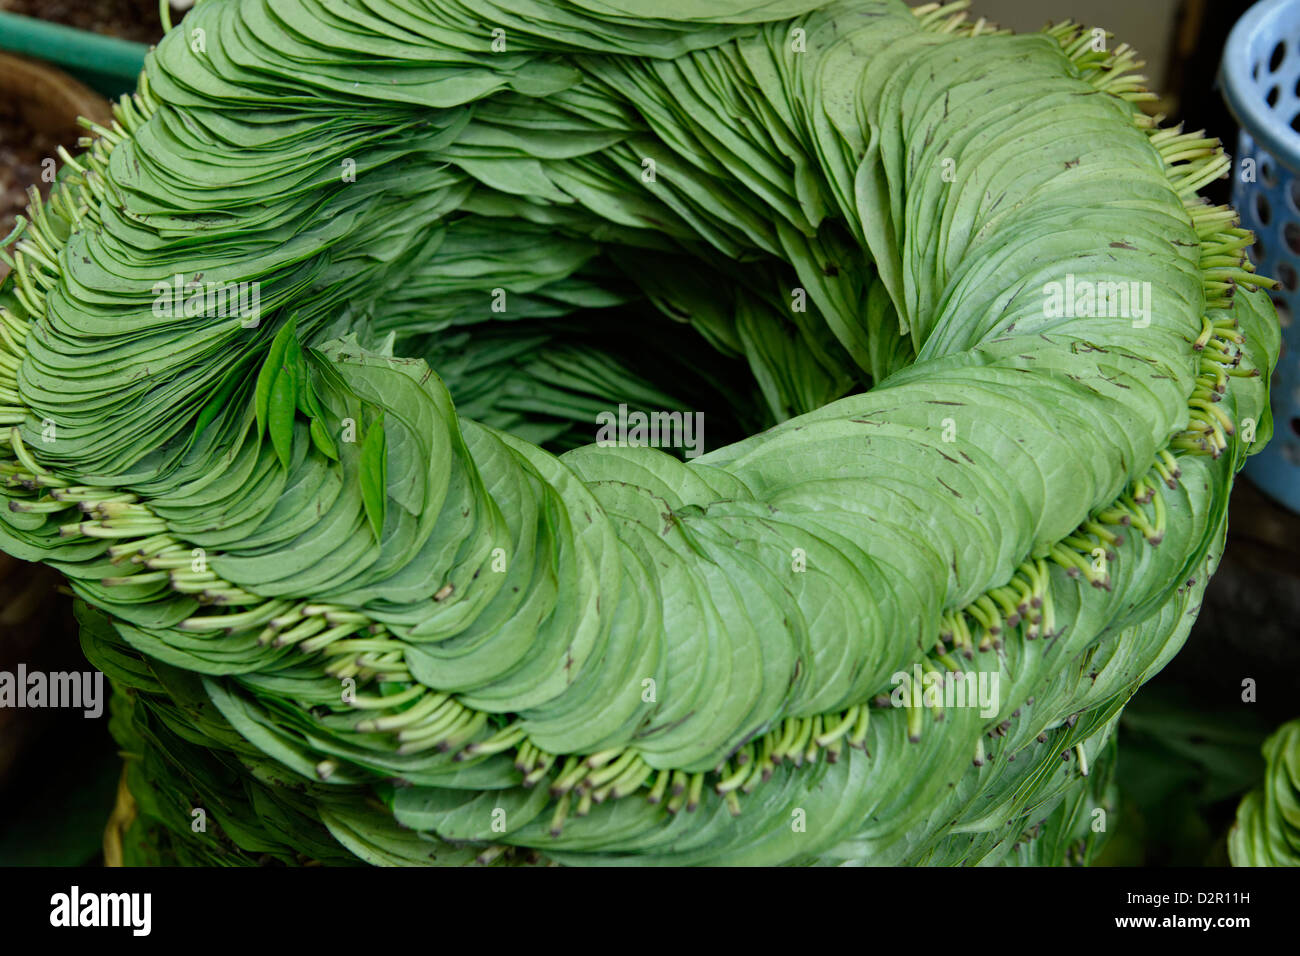 Betel, leaf of a vine belonging to the Piperaceae family, used as a stimulant, antiseptic and breath-freshener, - Stock Image